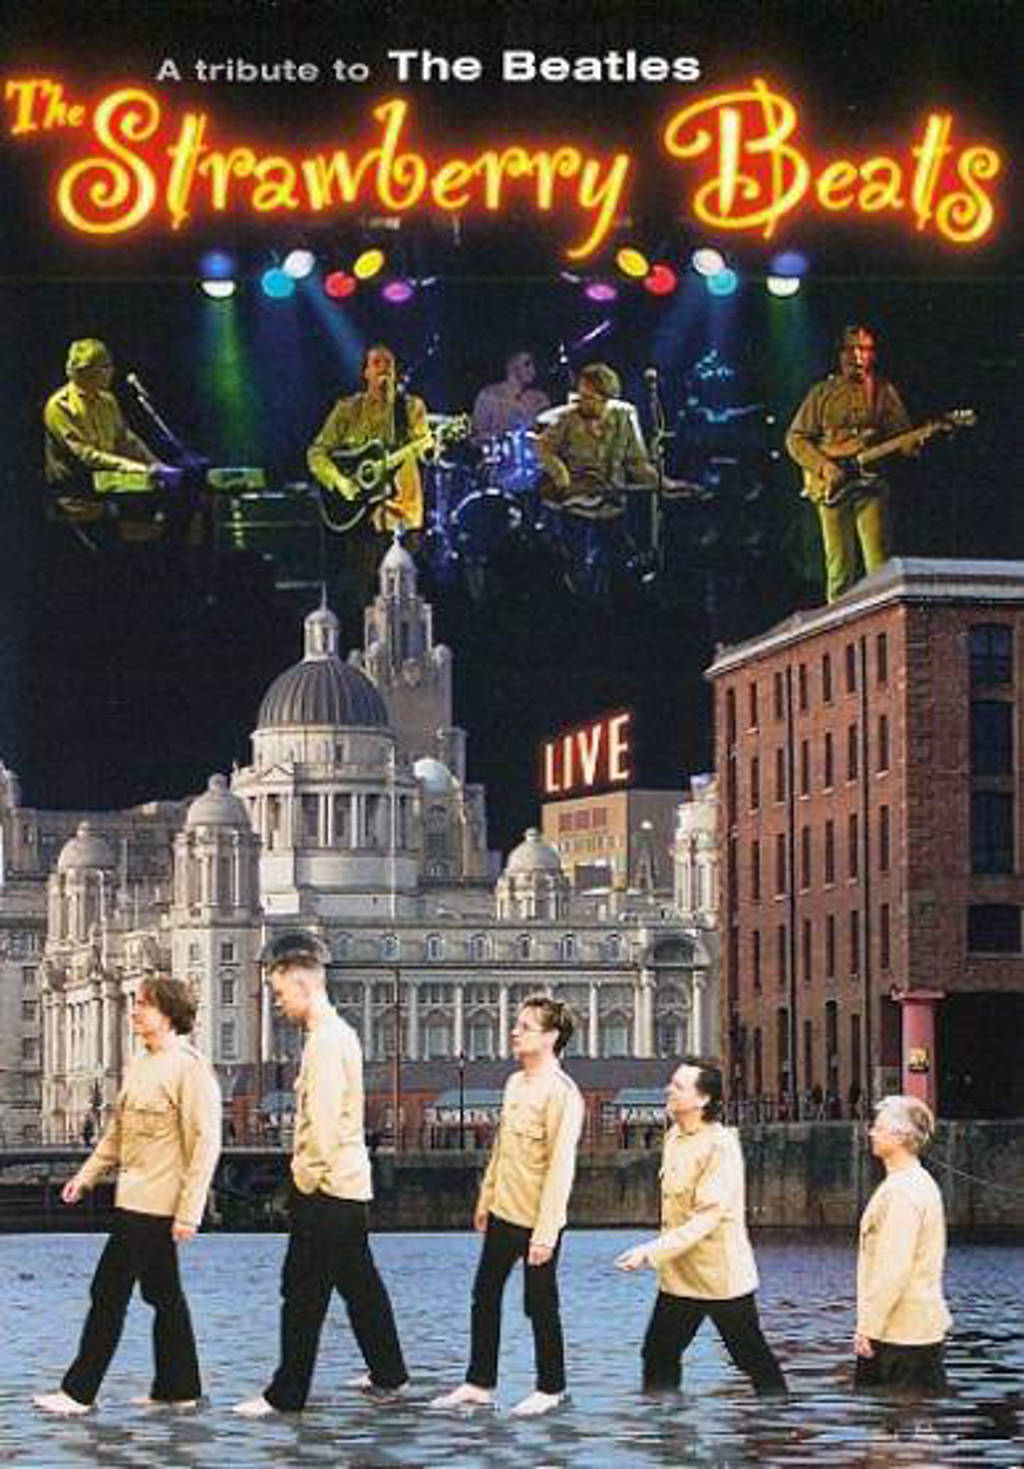 Strawberry beats - tribute to the Beatles (DVD)